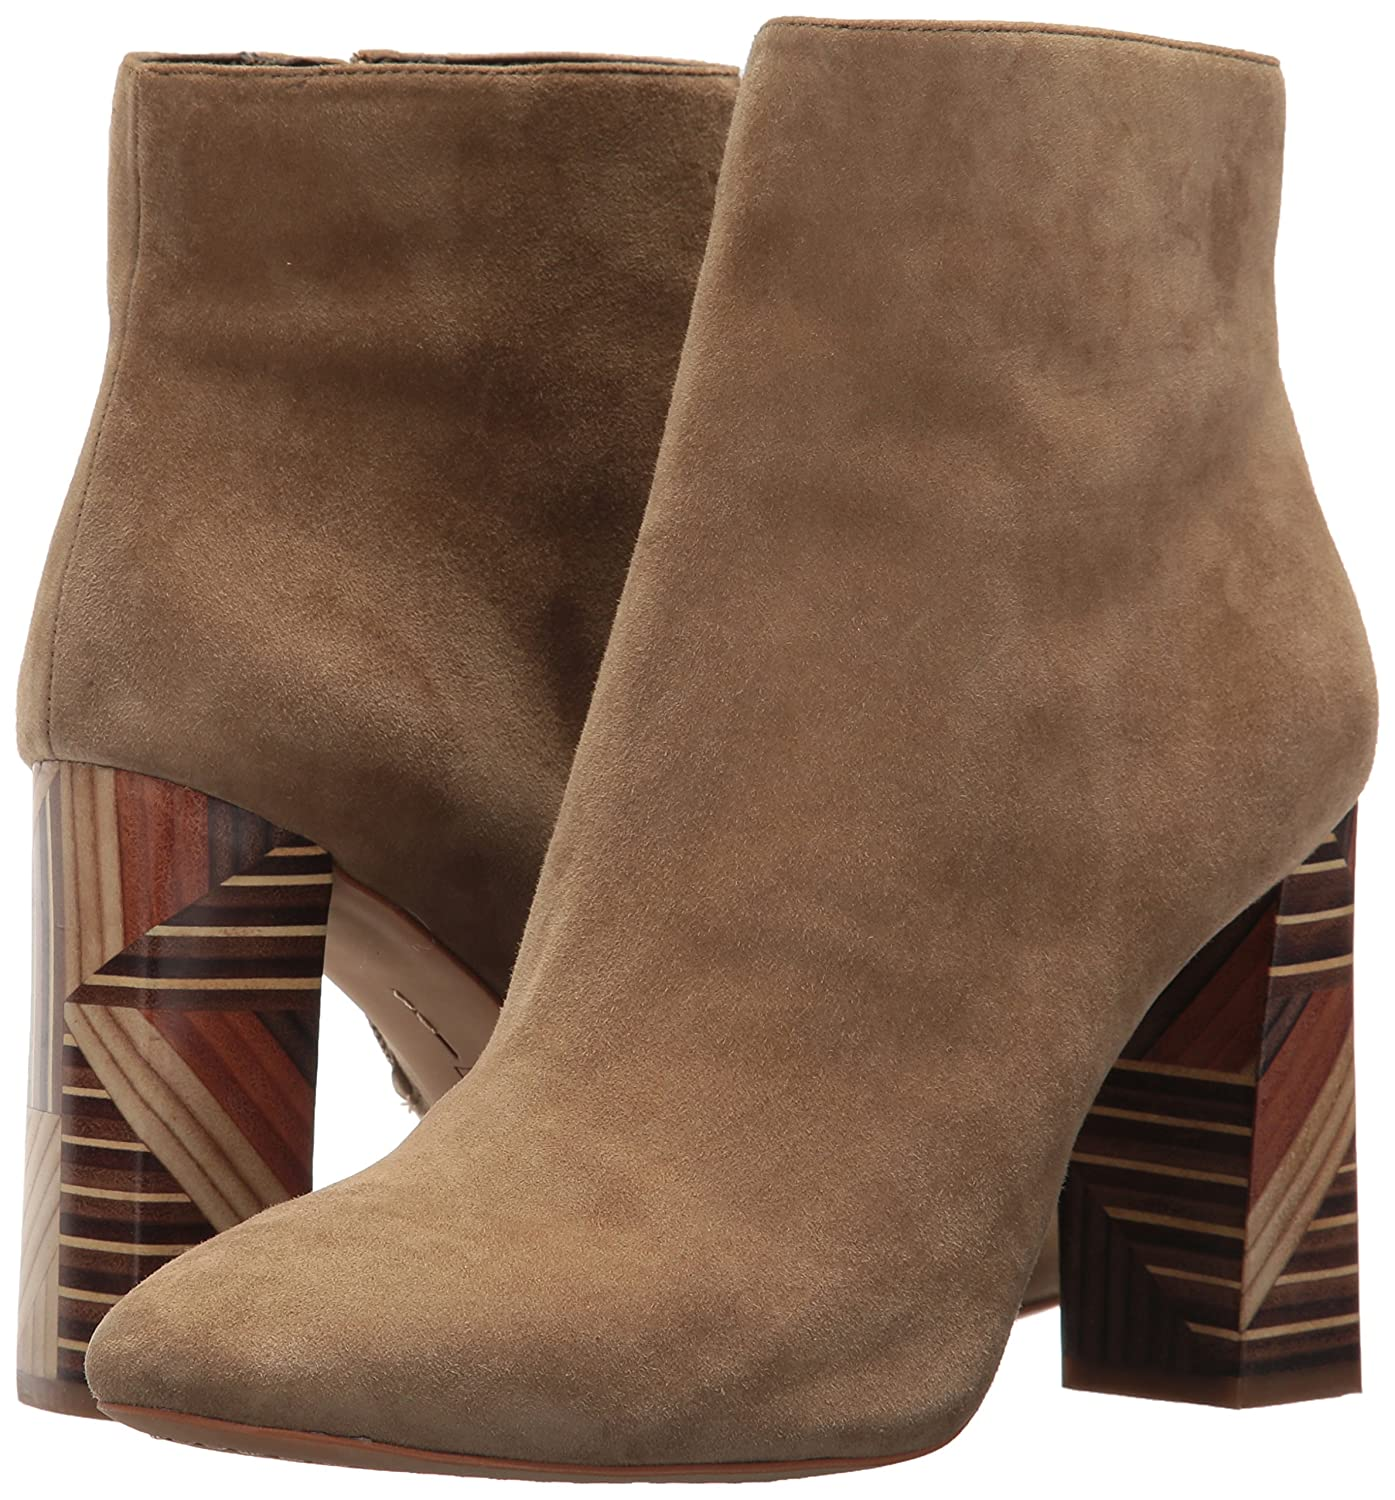 Vince Camuto Women's BRYNTA2 Ankle Boot B071VYYVG5 5.5 B(M) US|Split Pea